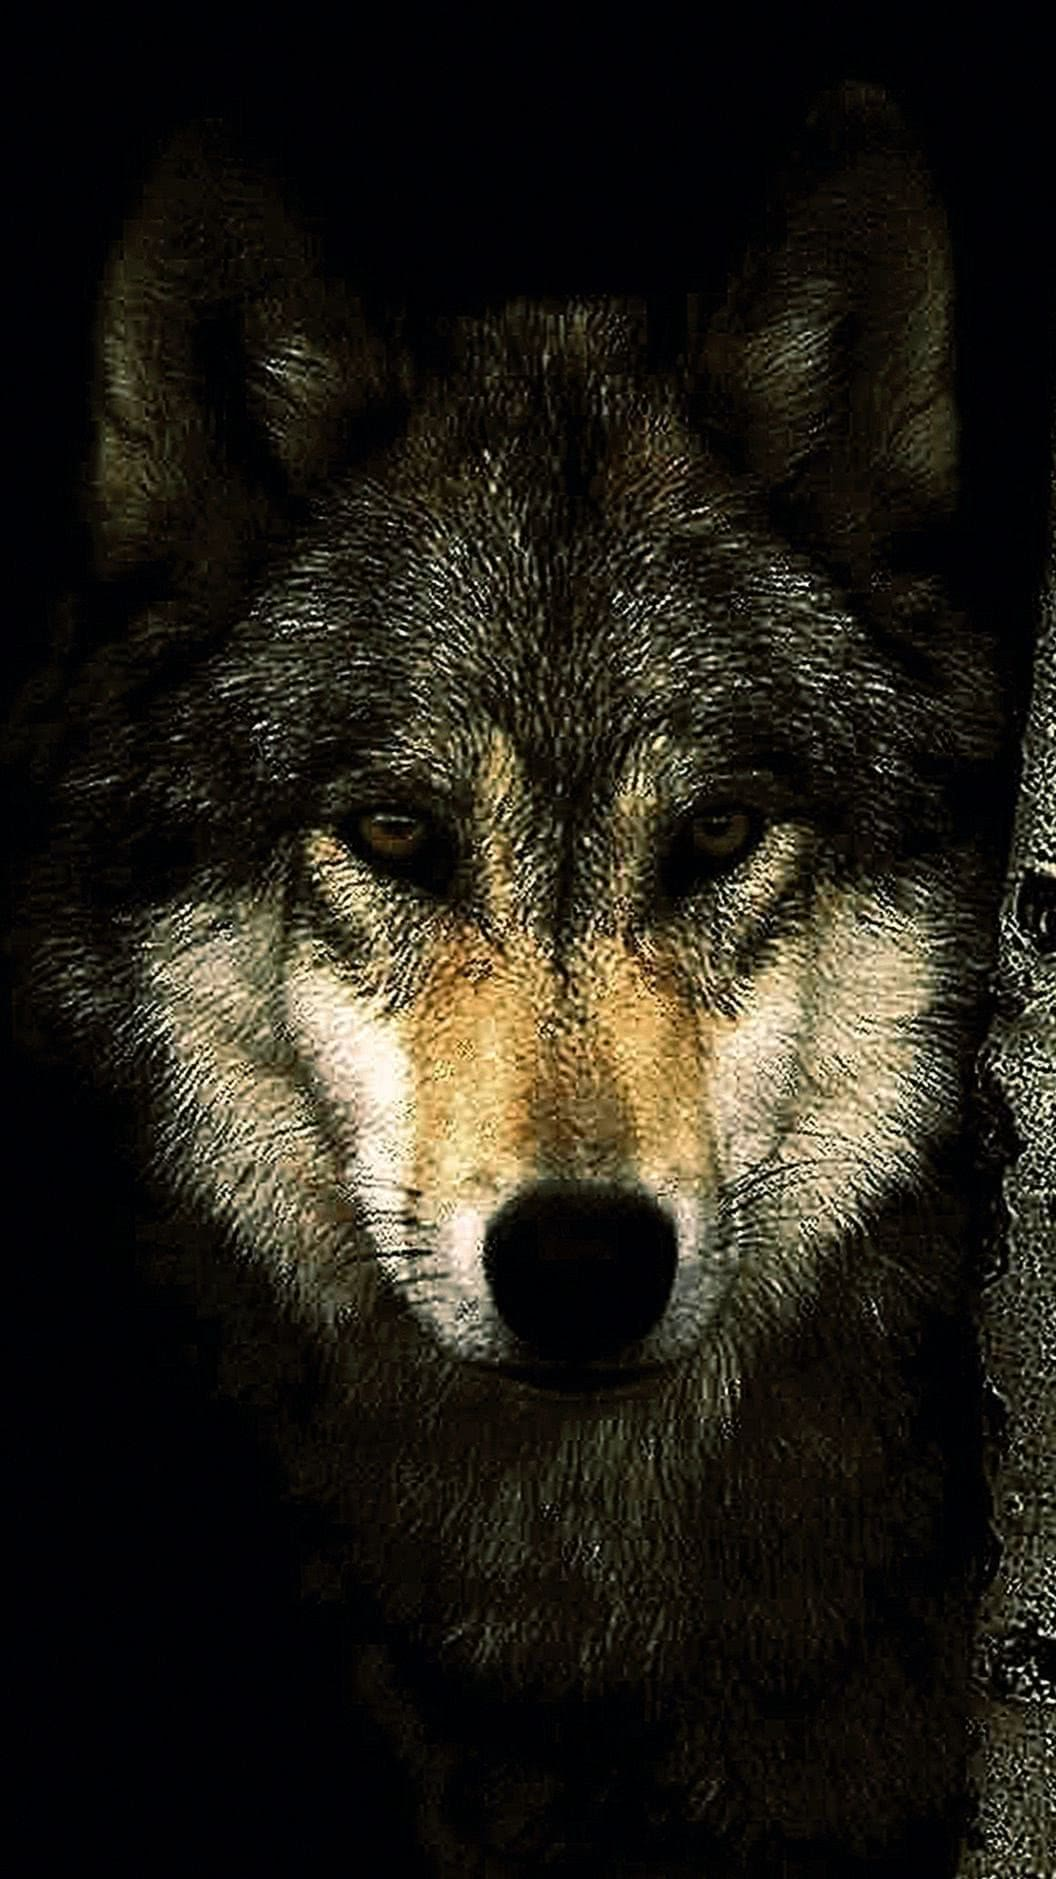 HD Wolf Wallpaper For Mobile